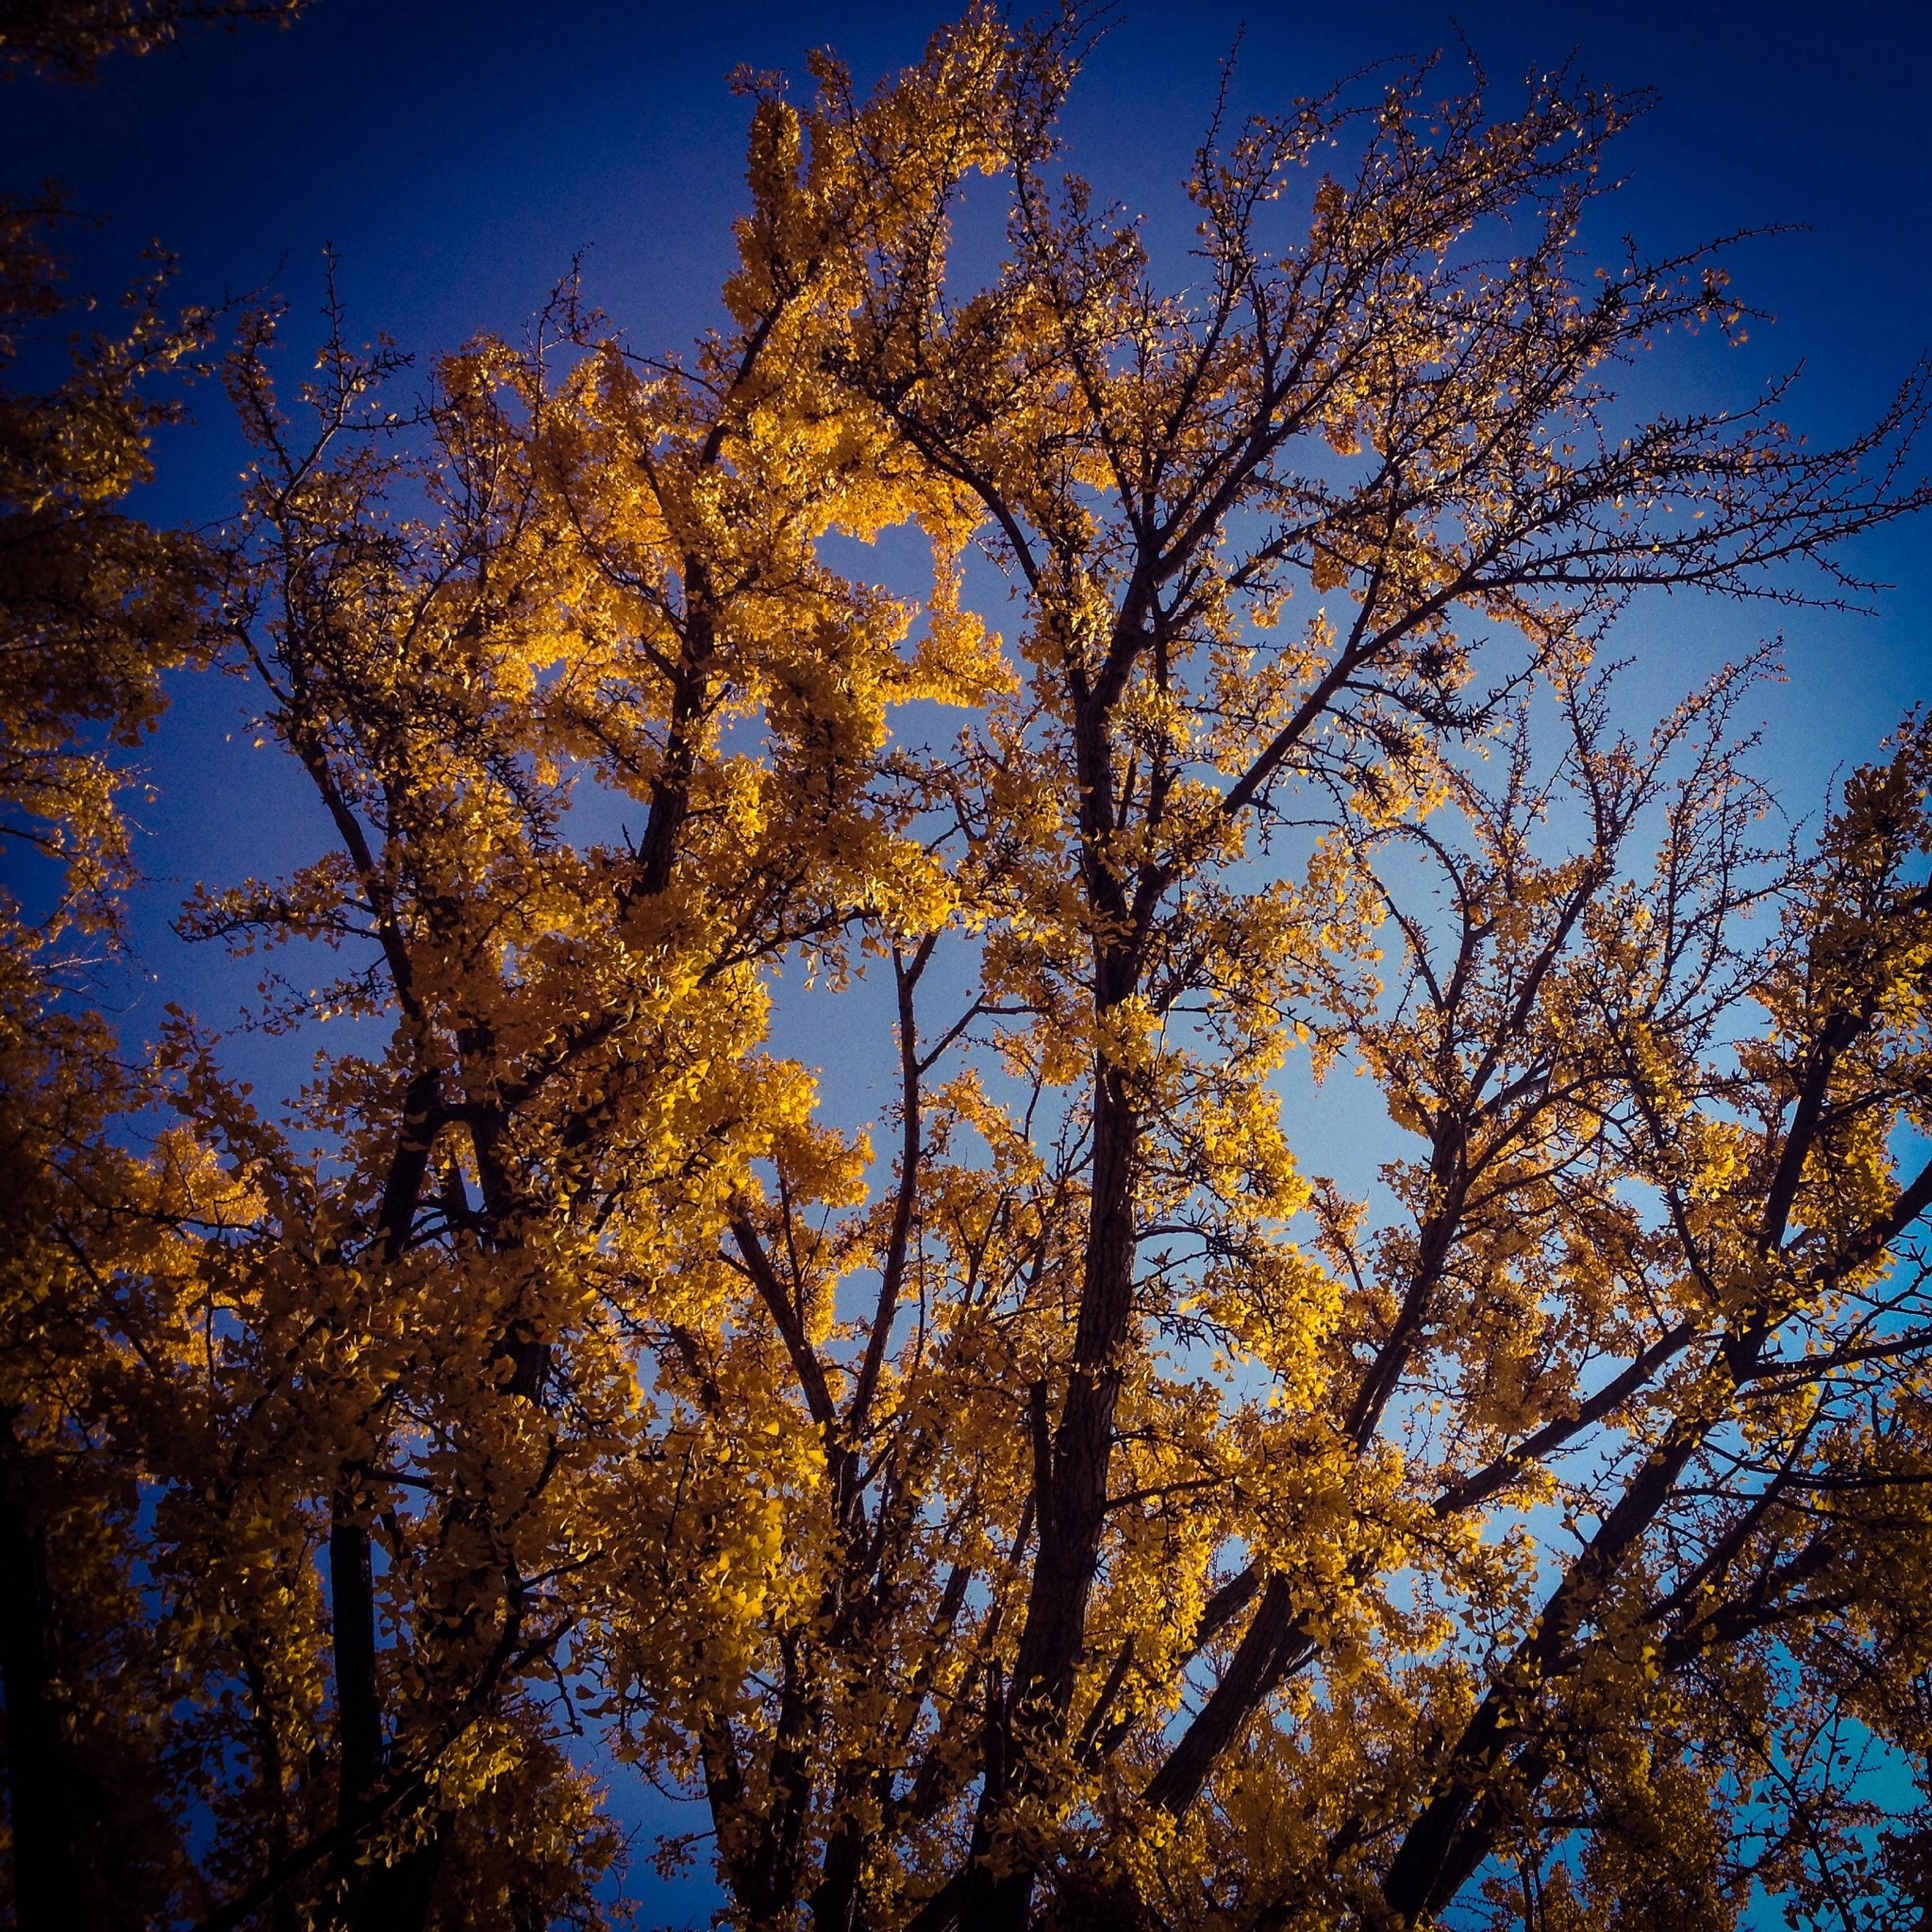 tree, low angle view, growth, clear sky, branch, blue, nature, beauty in nature, tranquility, sunlight, yellow, sky, outdoors, no people, scenics, day, tranquil scene, autumn, flower, freshness